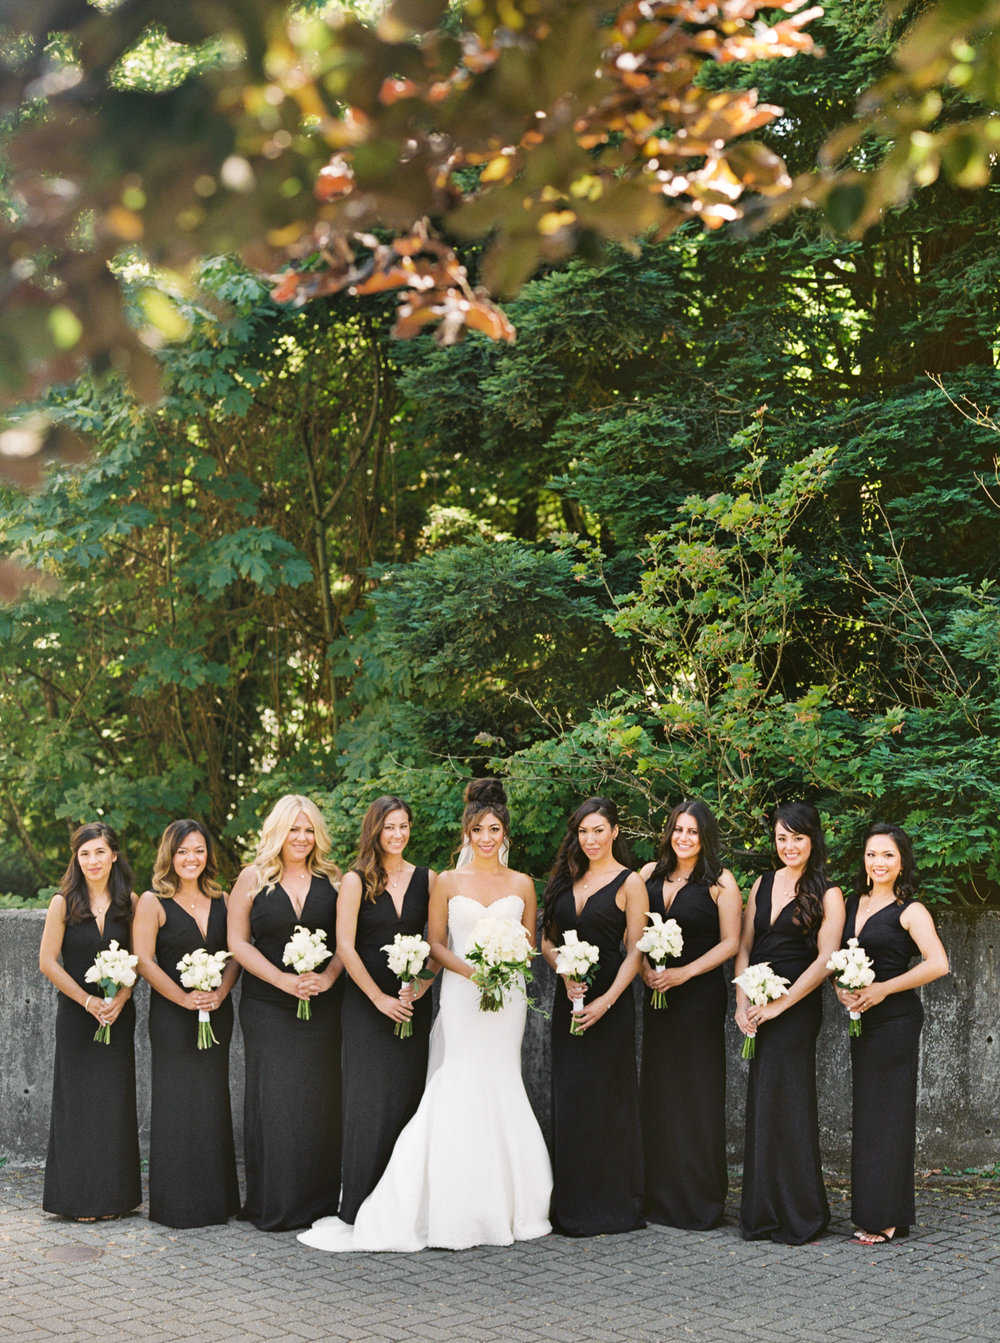 021OutliveCreative_Travel_Photographer_Videographer_Lewis&Clark_Oregon_Elegant_BlackTie_Destination_Wedding.jpg